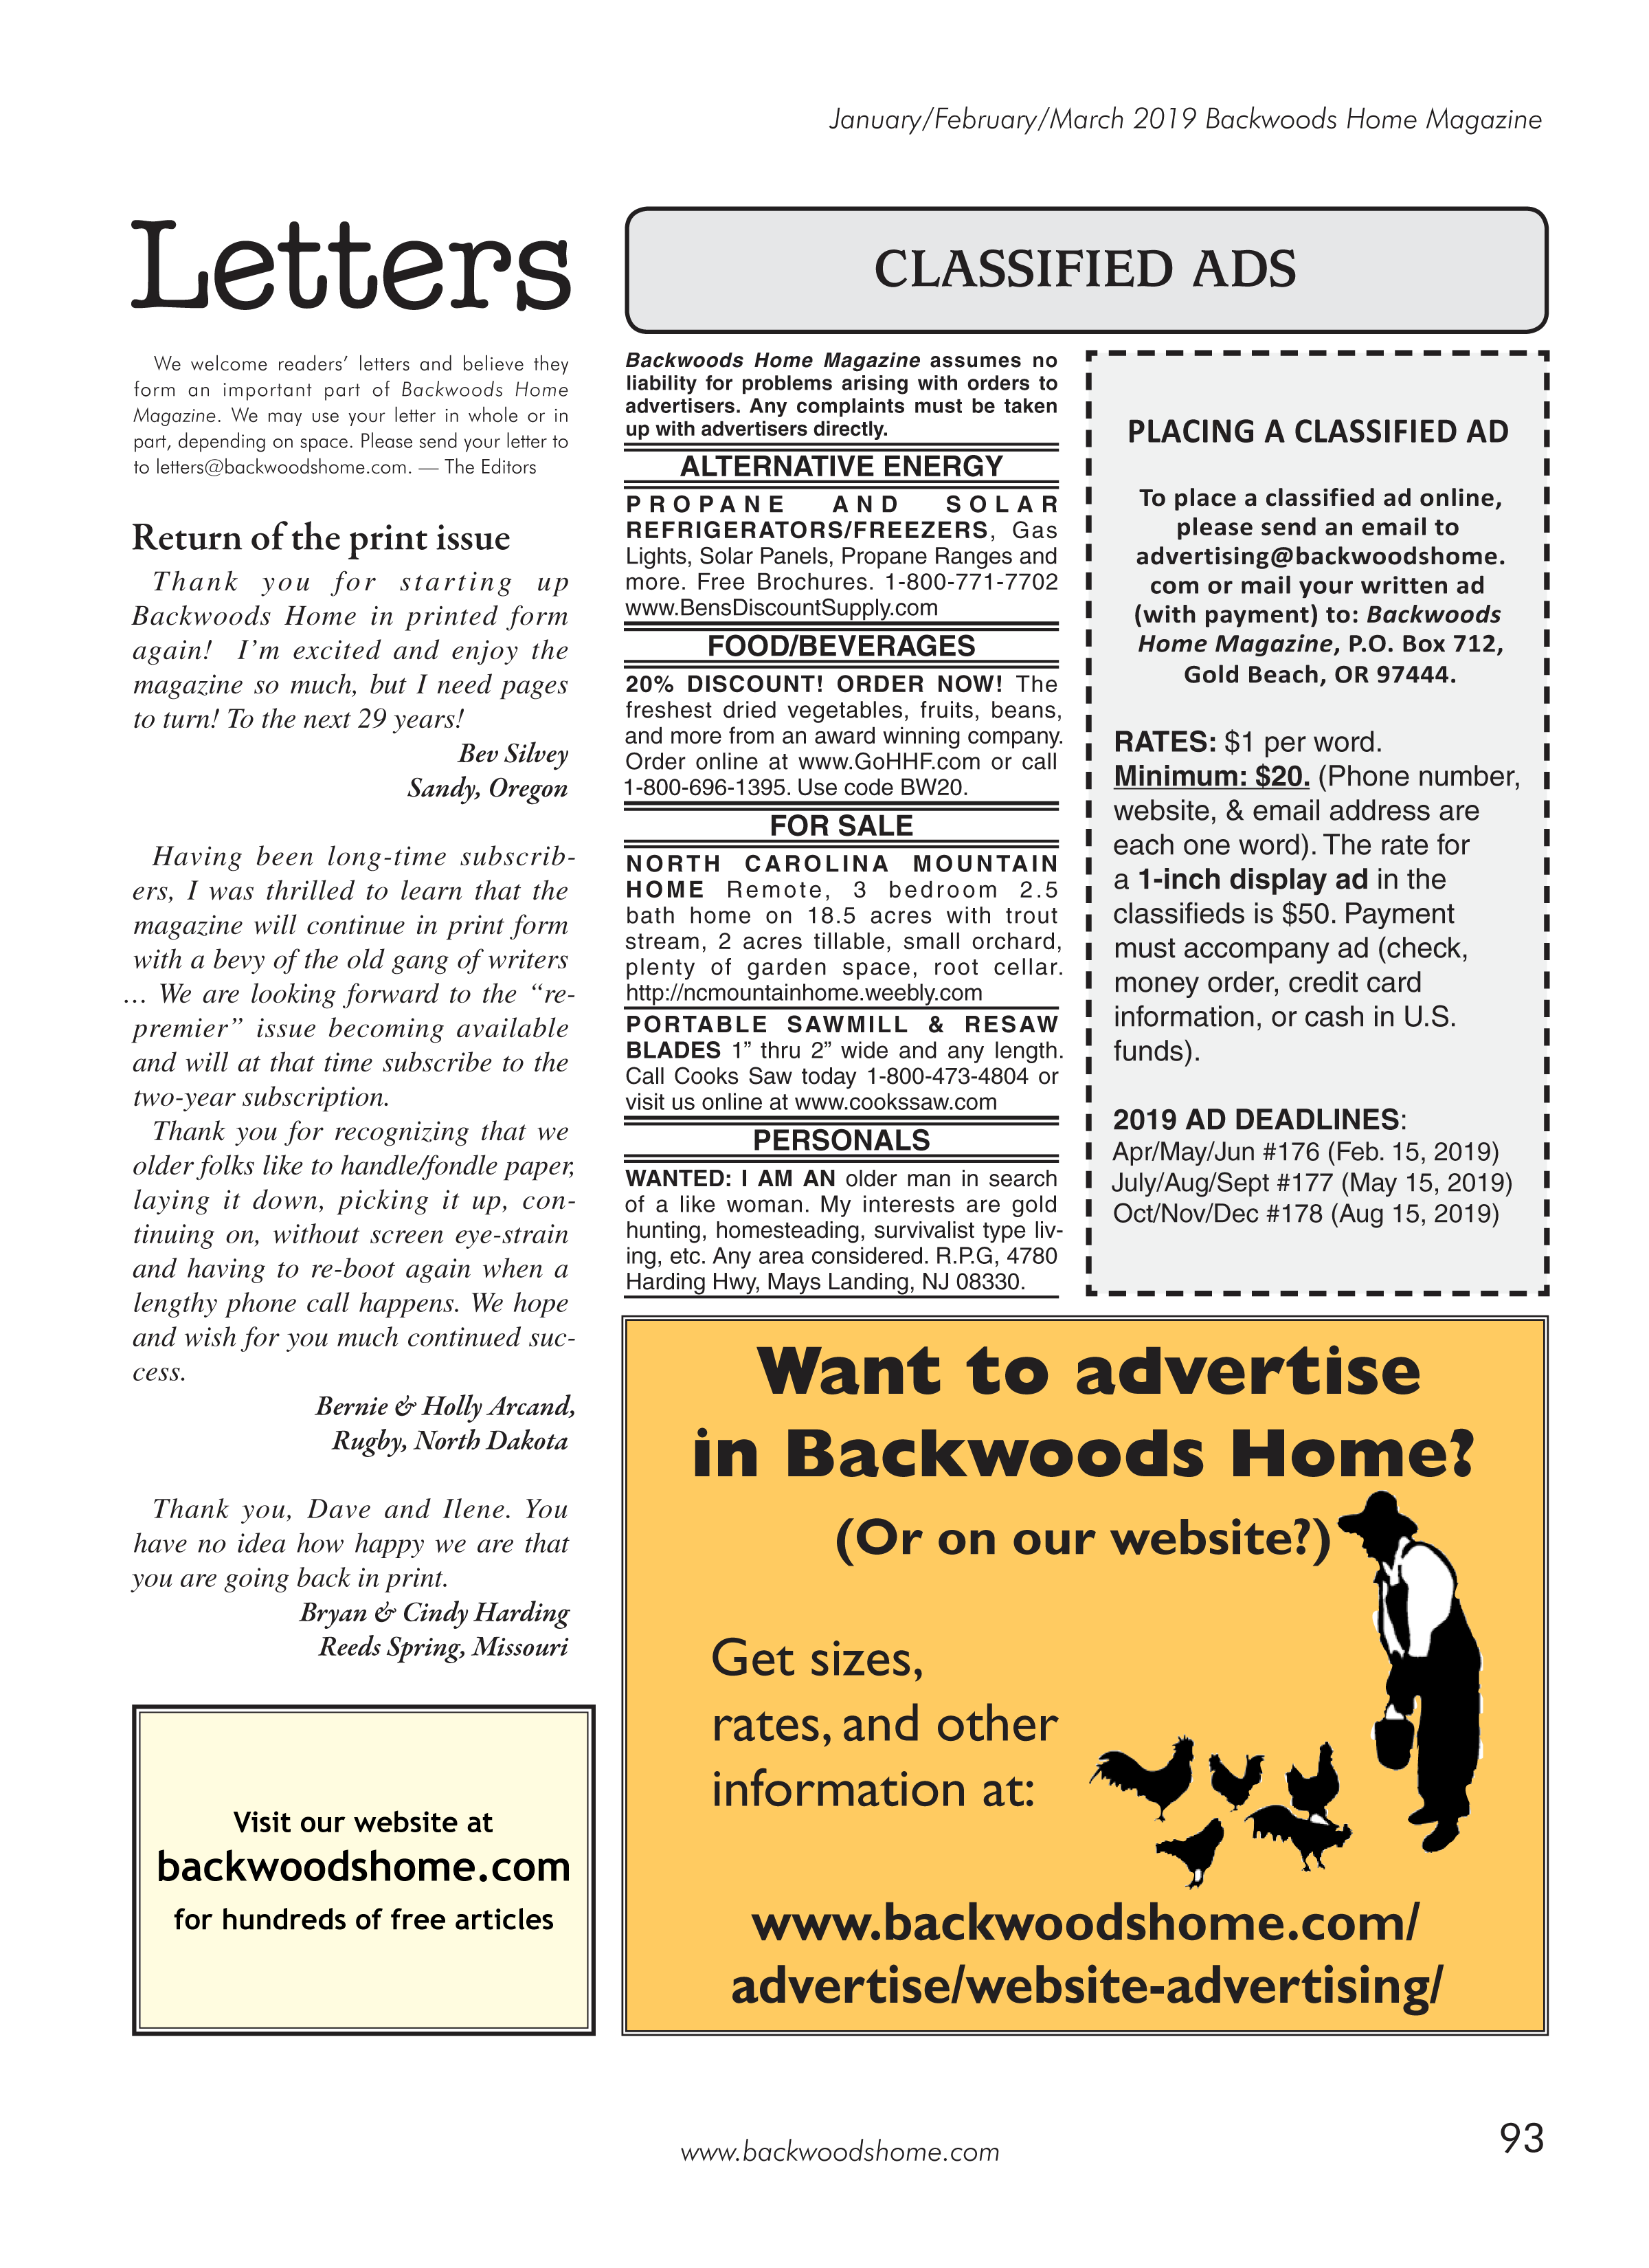 Classified Ads from our Current Issue